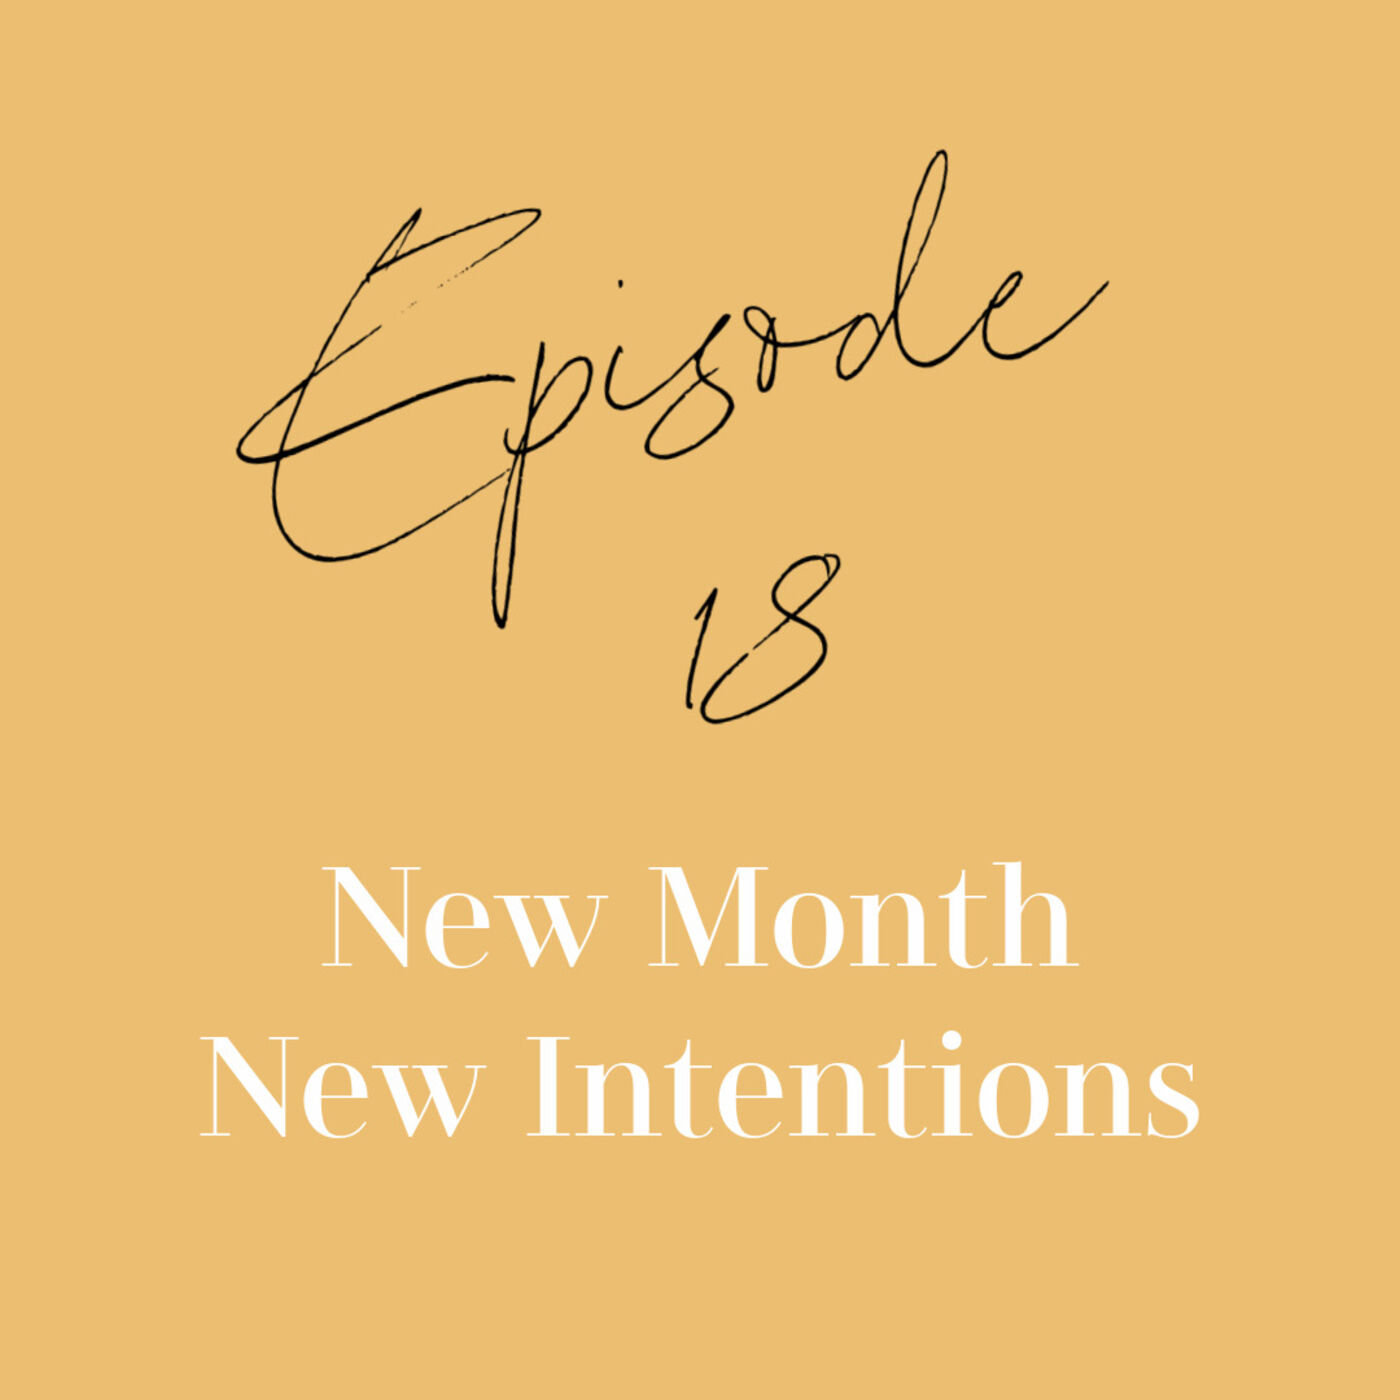 Episode 18: New Month & New Intentions